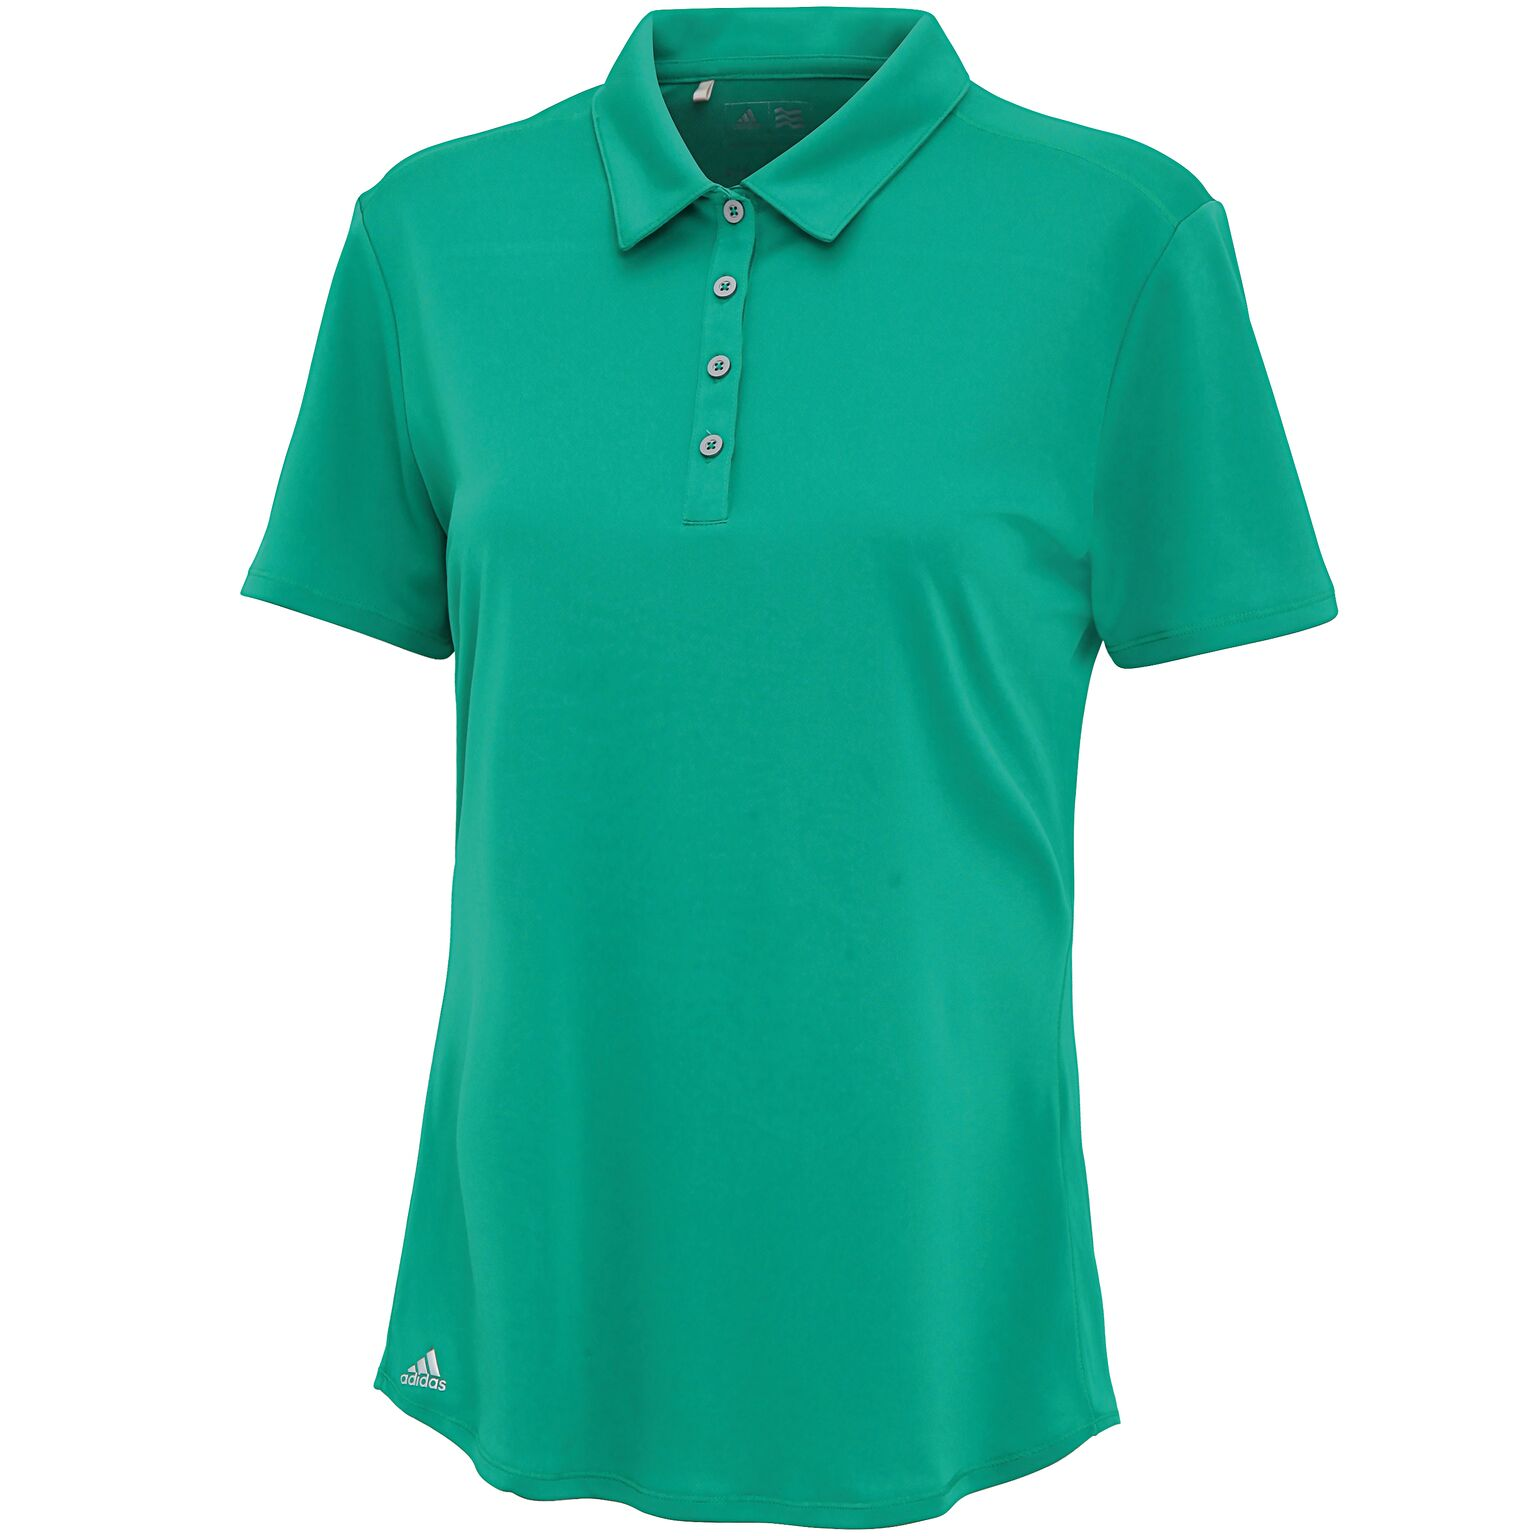 Adidas Women's teamwear polo Amazon